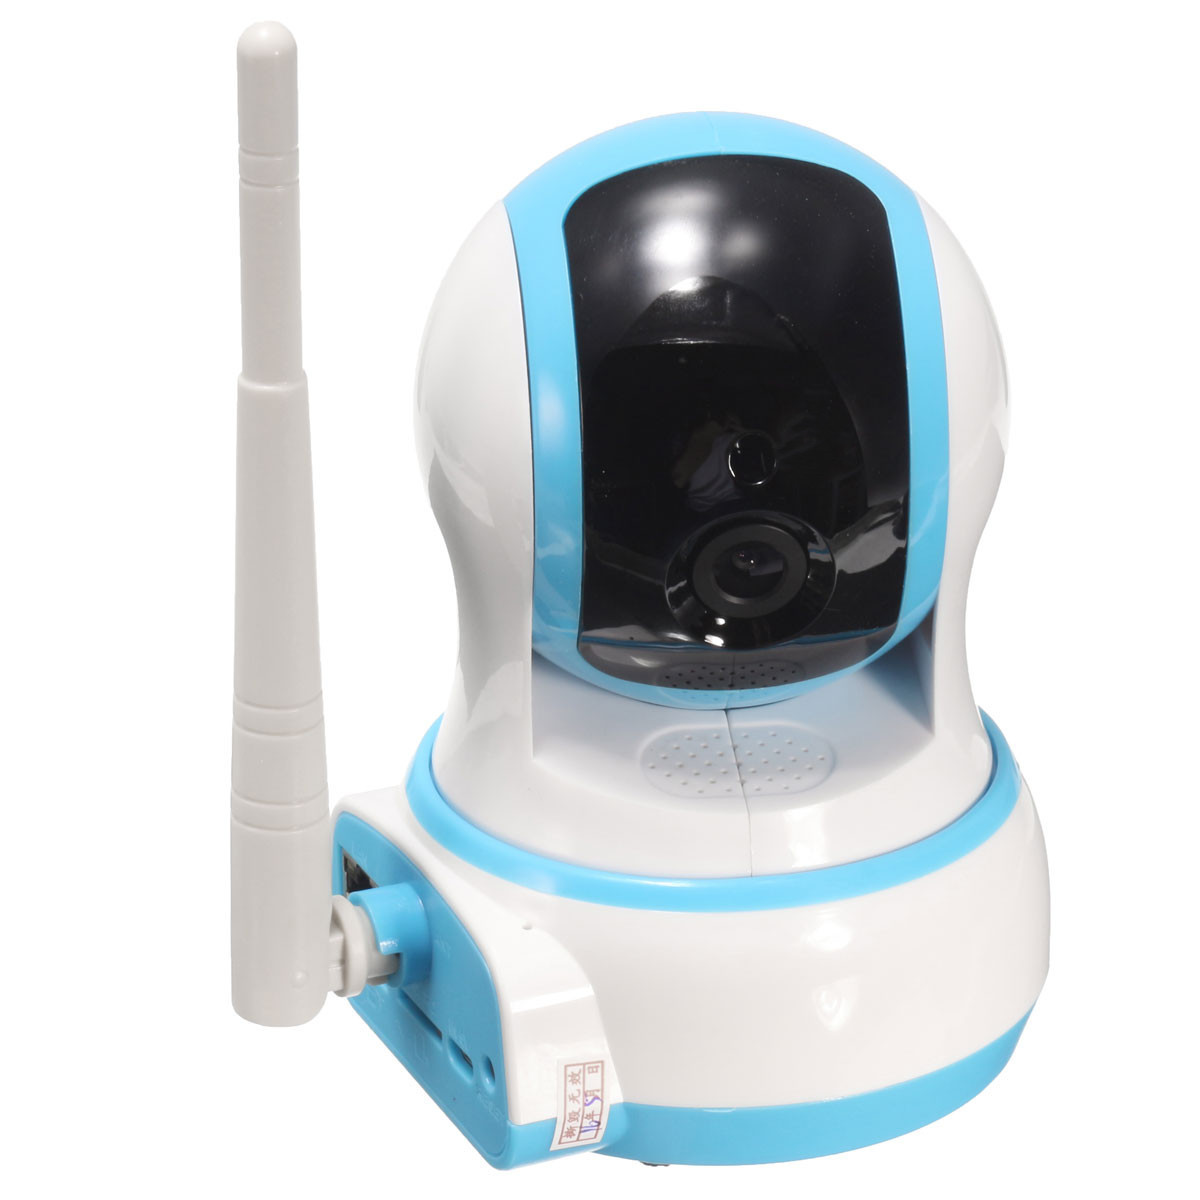 Wireless WiFi 720P HD Network CCTV Monitor Night Vision Home Security IP Camera